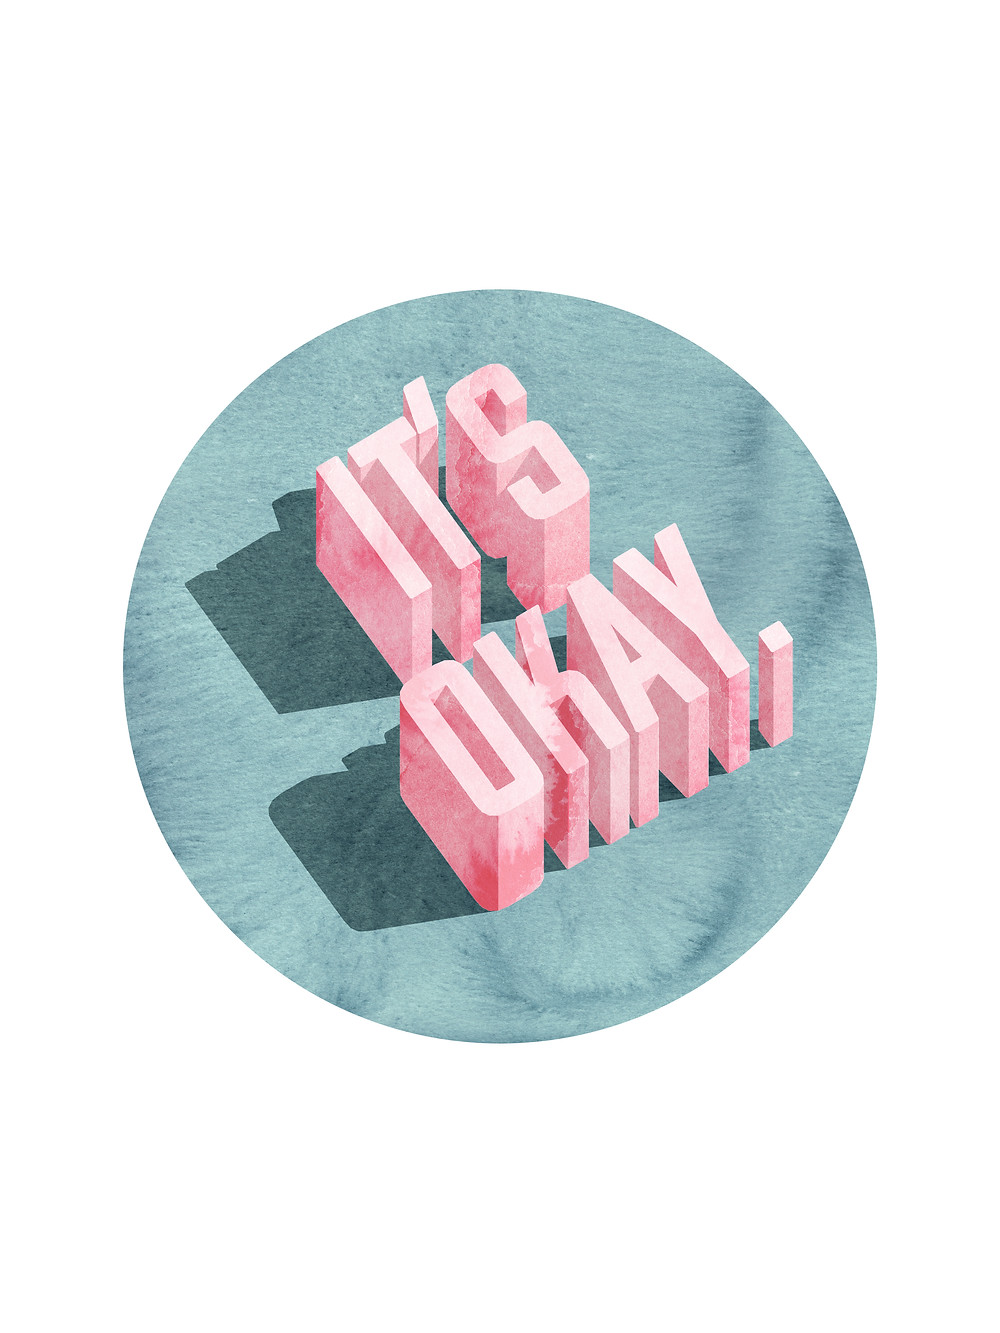 It's Okay Pin:  This is the start of a series of typographic explorations…looking at common self-affirmations and slogans.